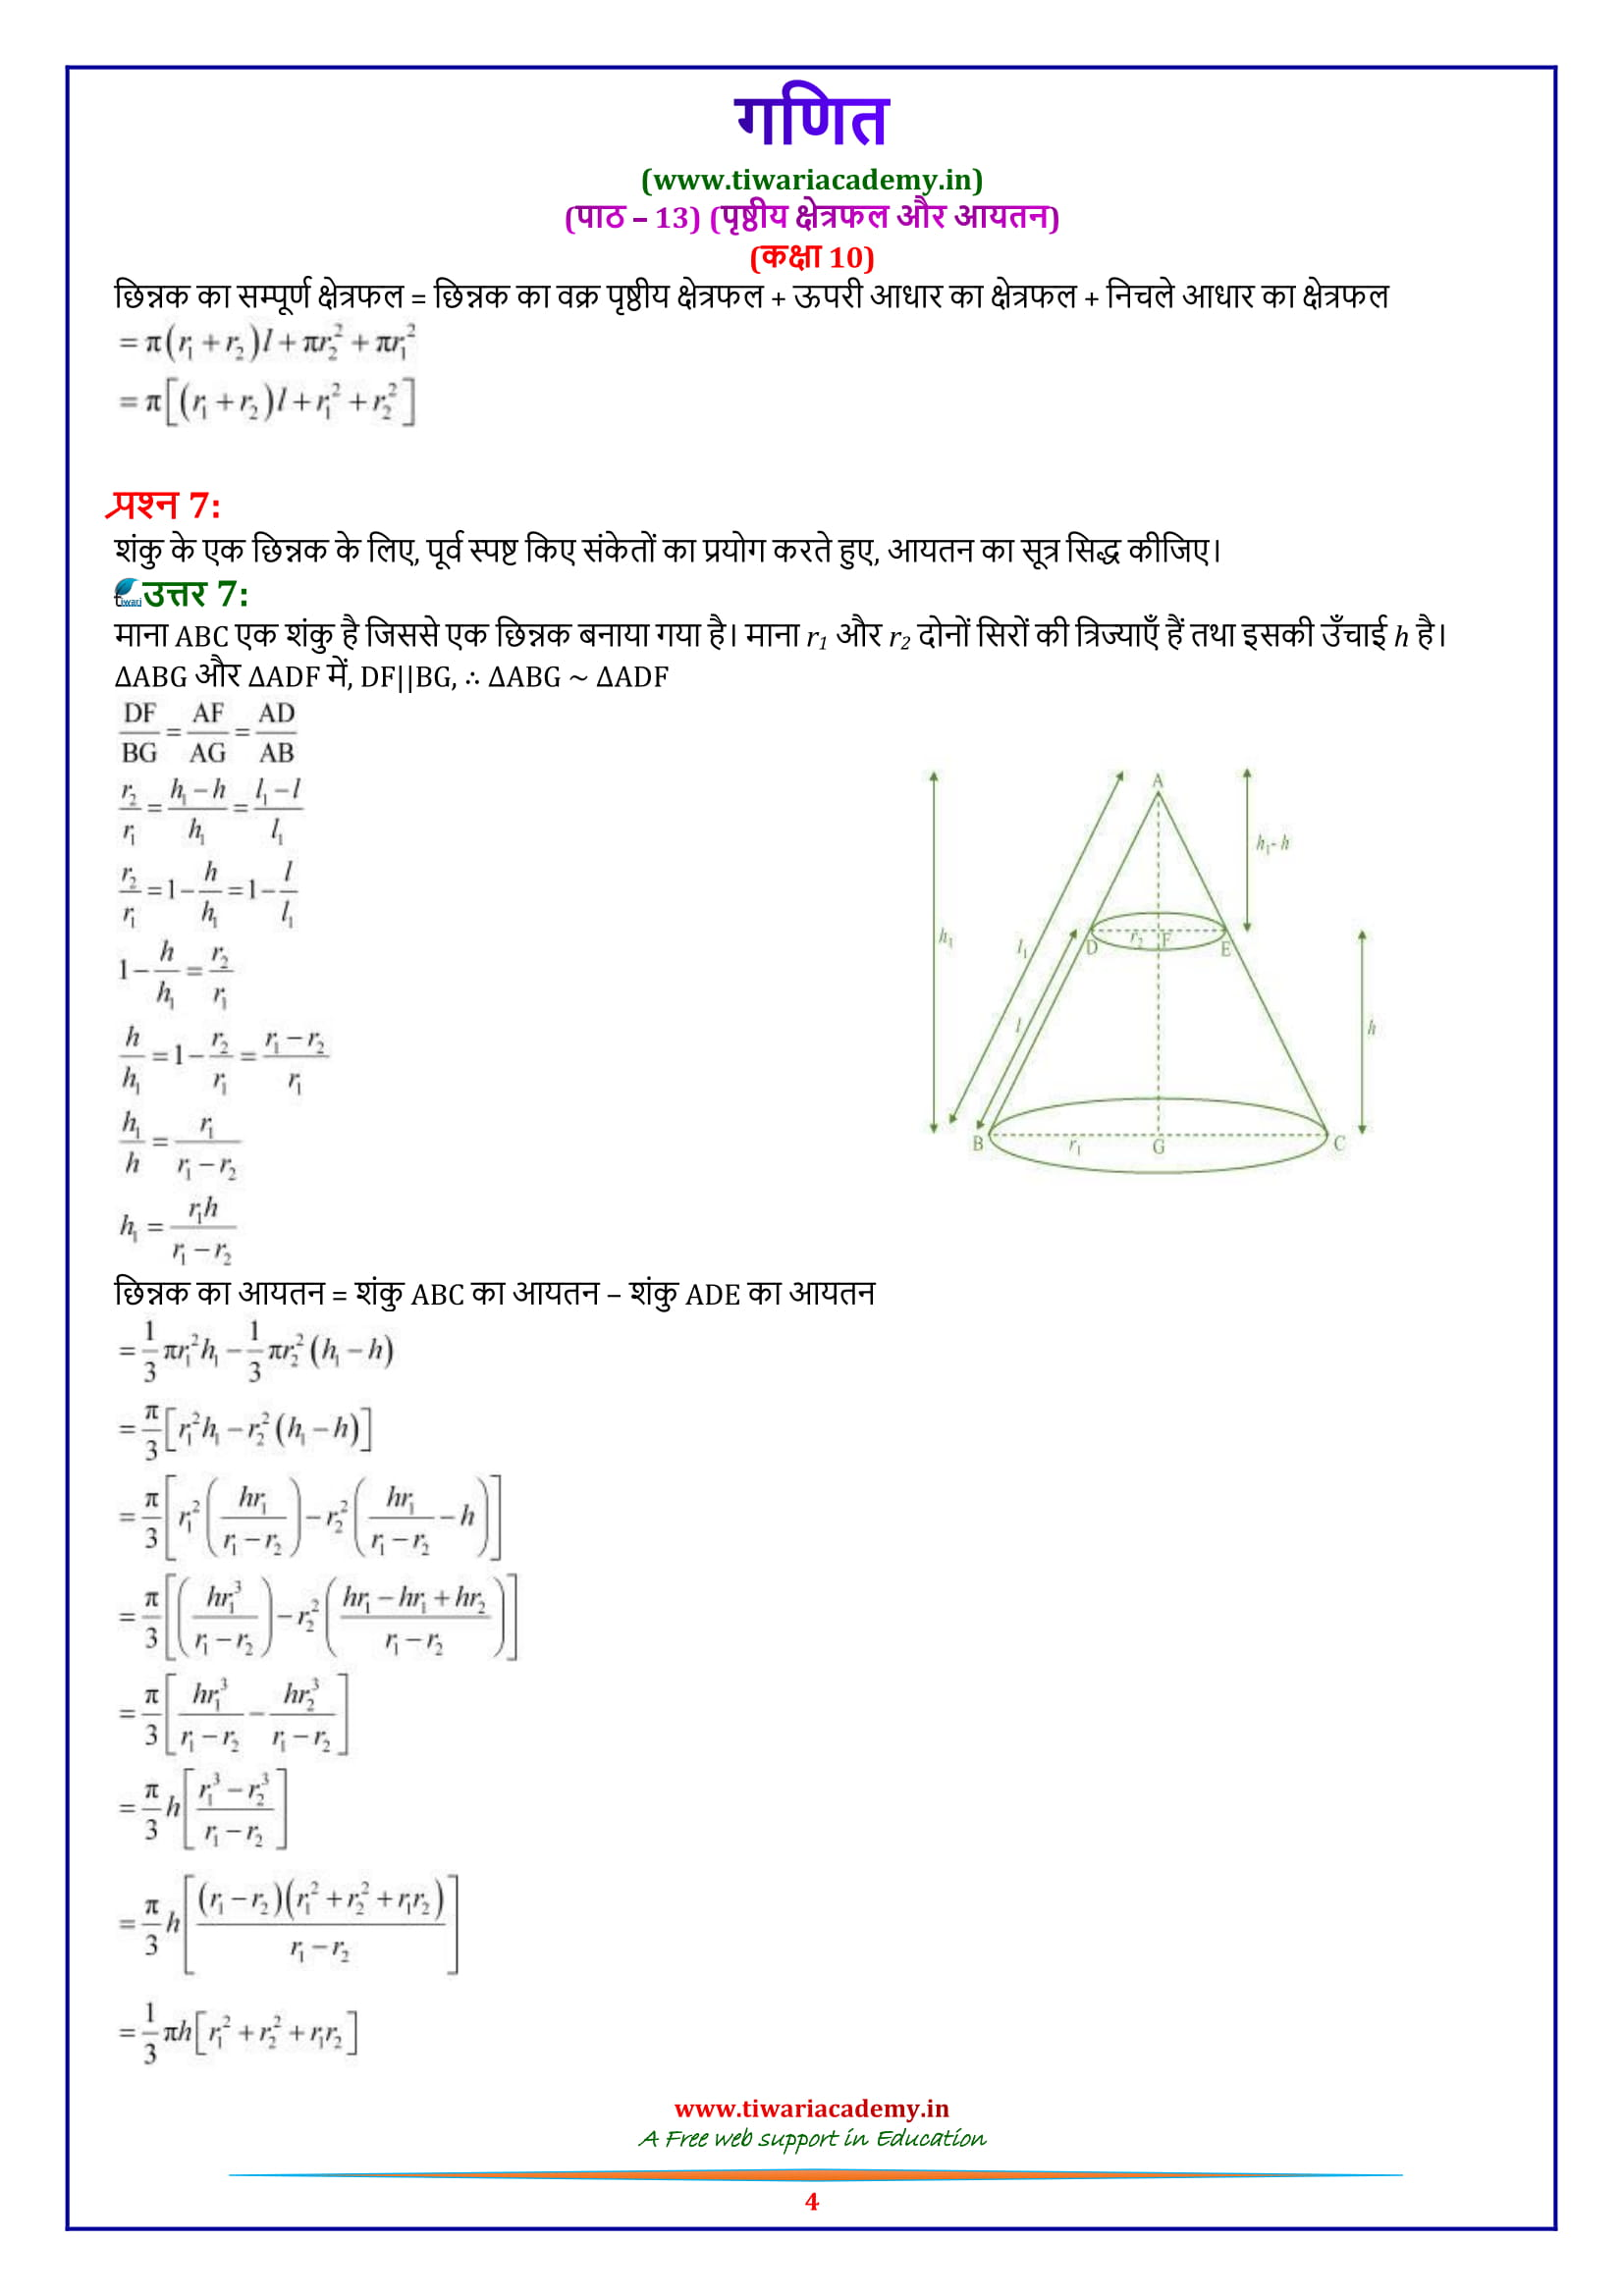 Class 10 Maths optional exercise 13.5 solutions for up board and cbse